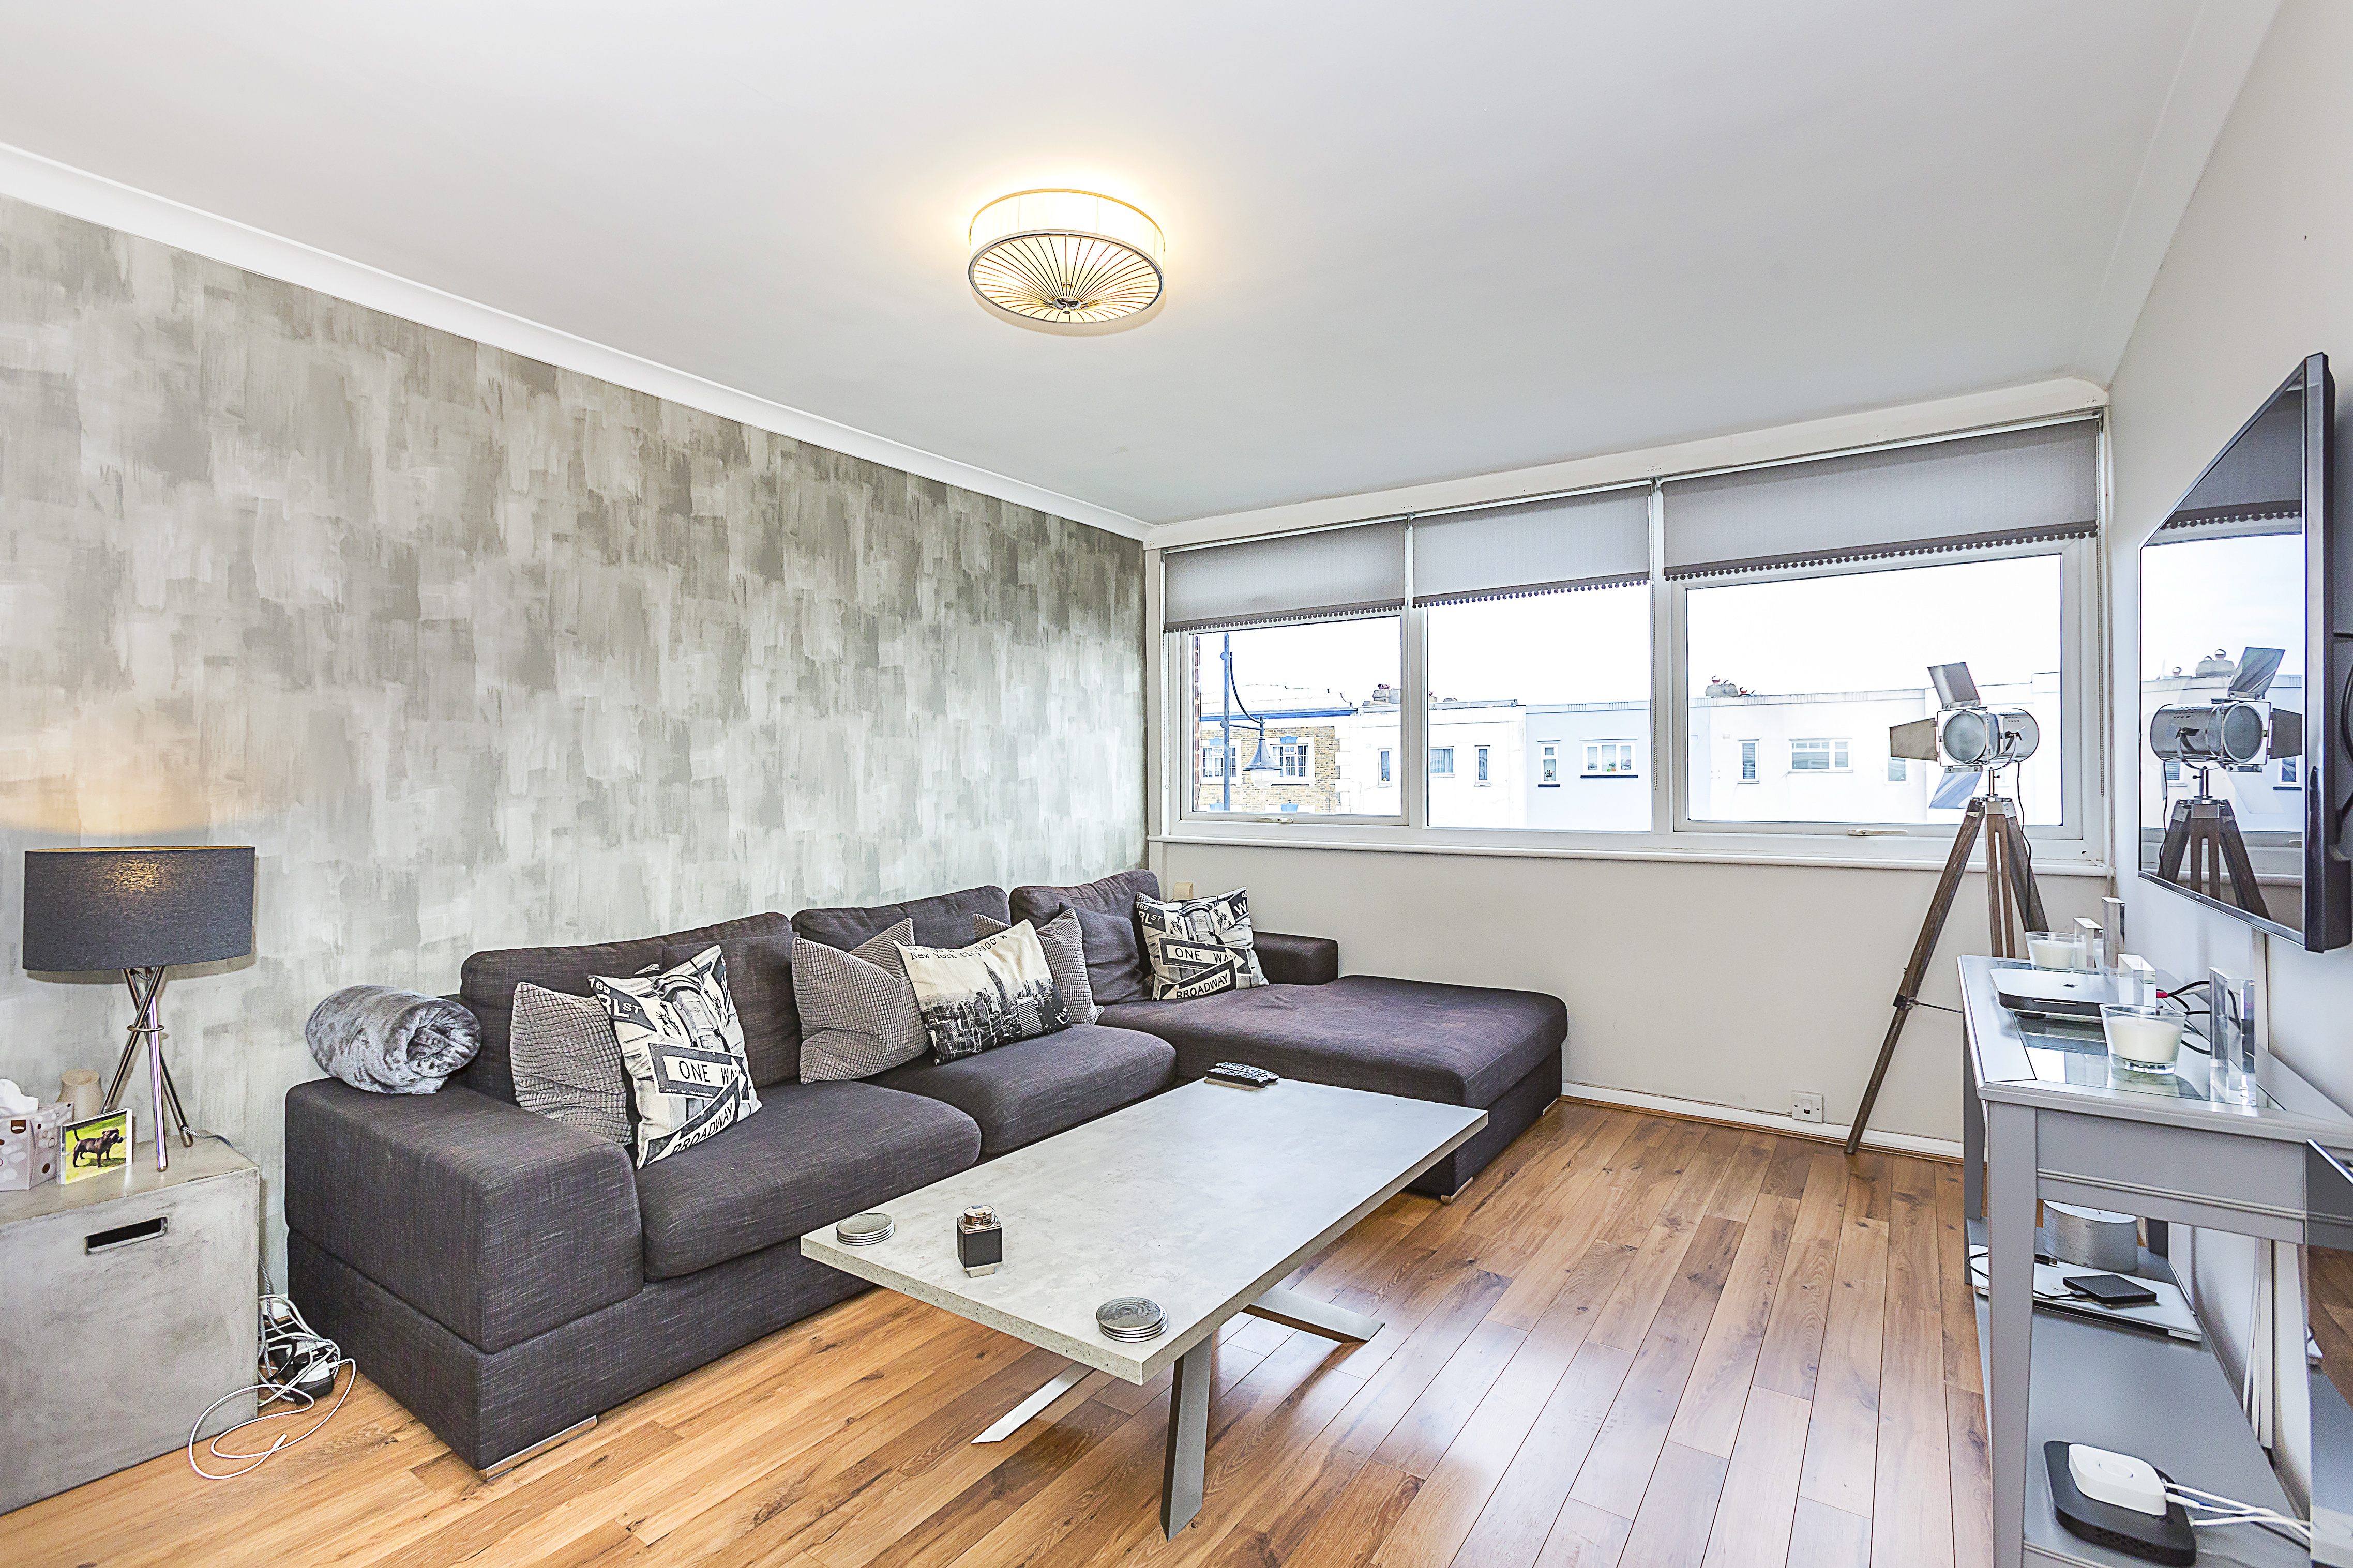 2 Bedroom Apartment, The Chiltons, South Woodford, E18 2JQ